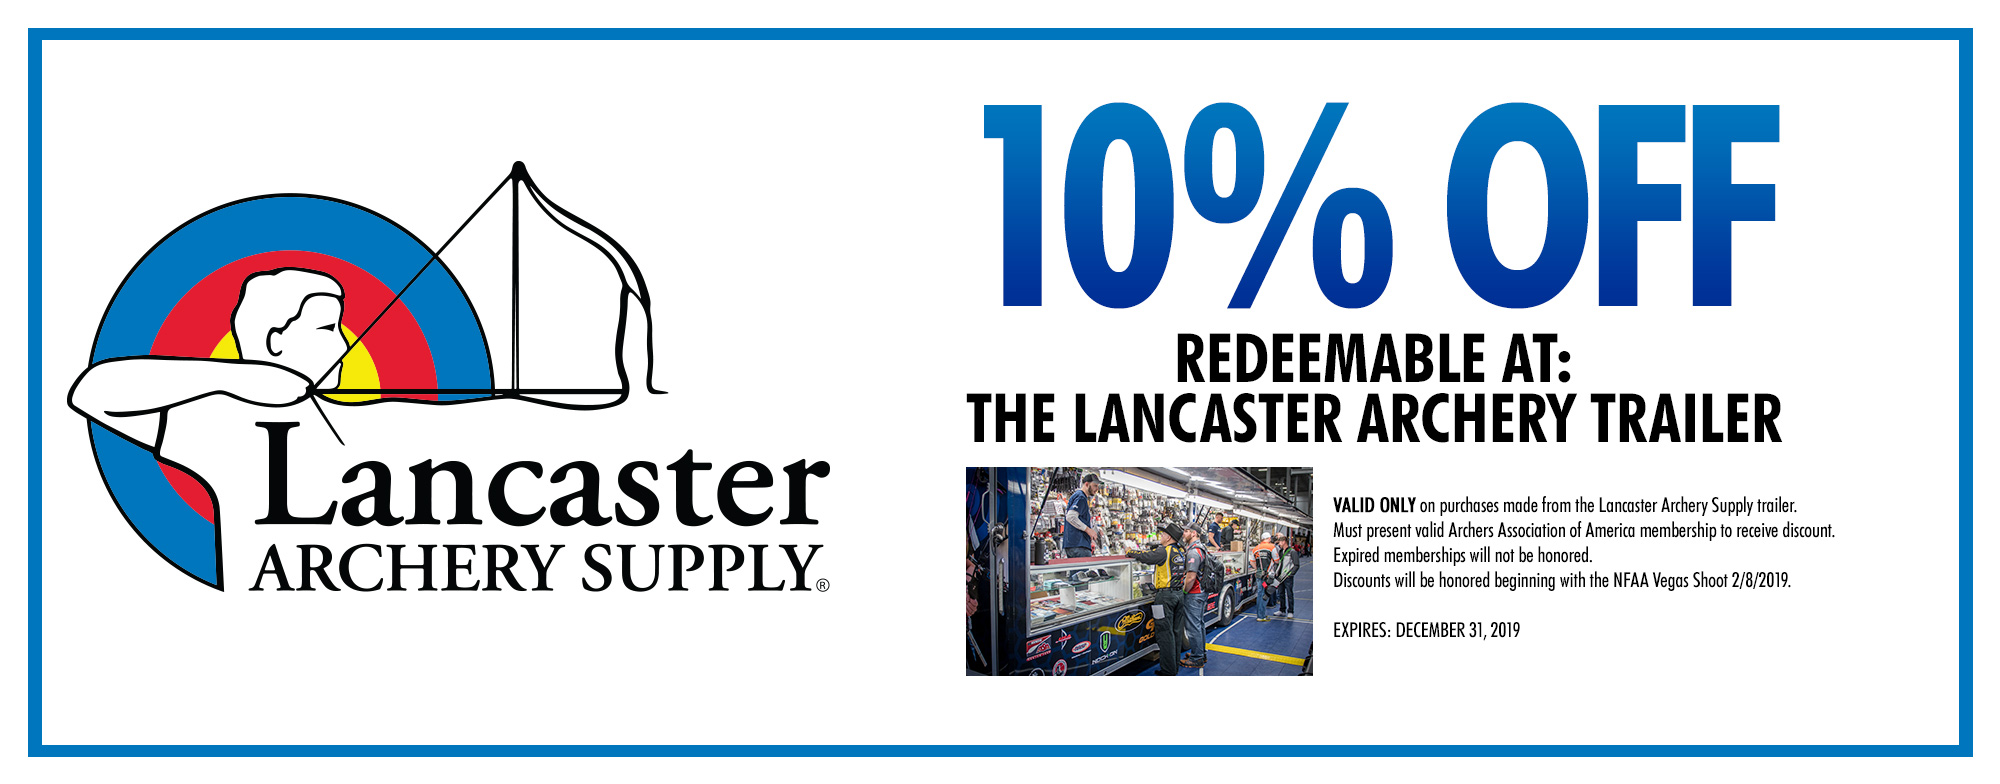 Lancaster Archery Supply - 10% Discount at the Lancaster Trailer During Events